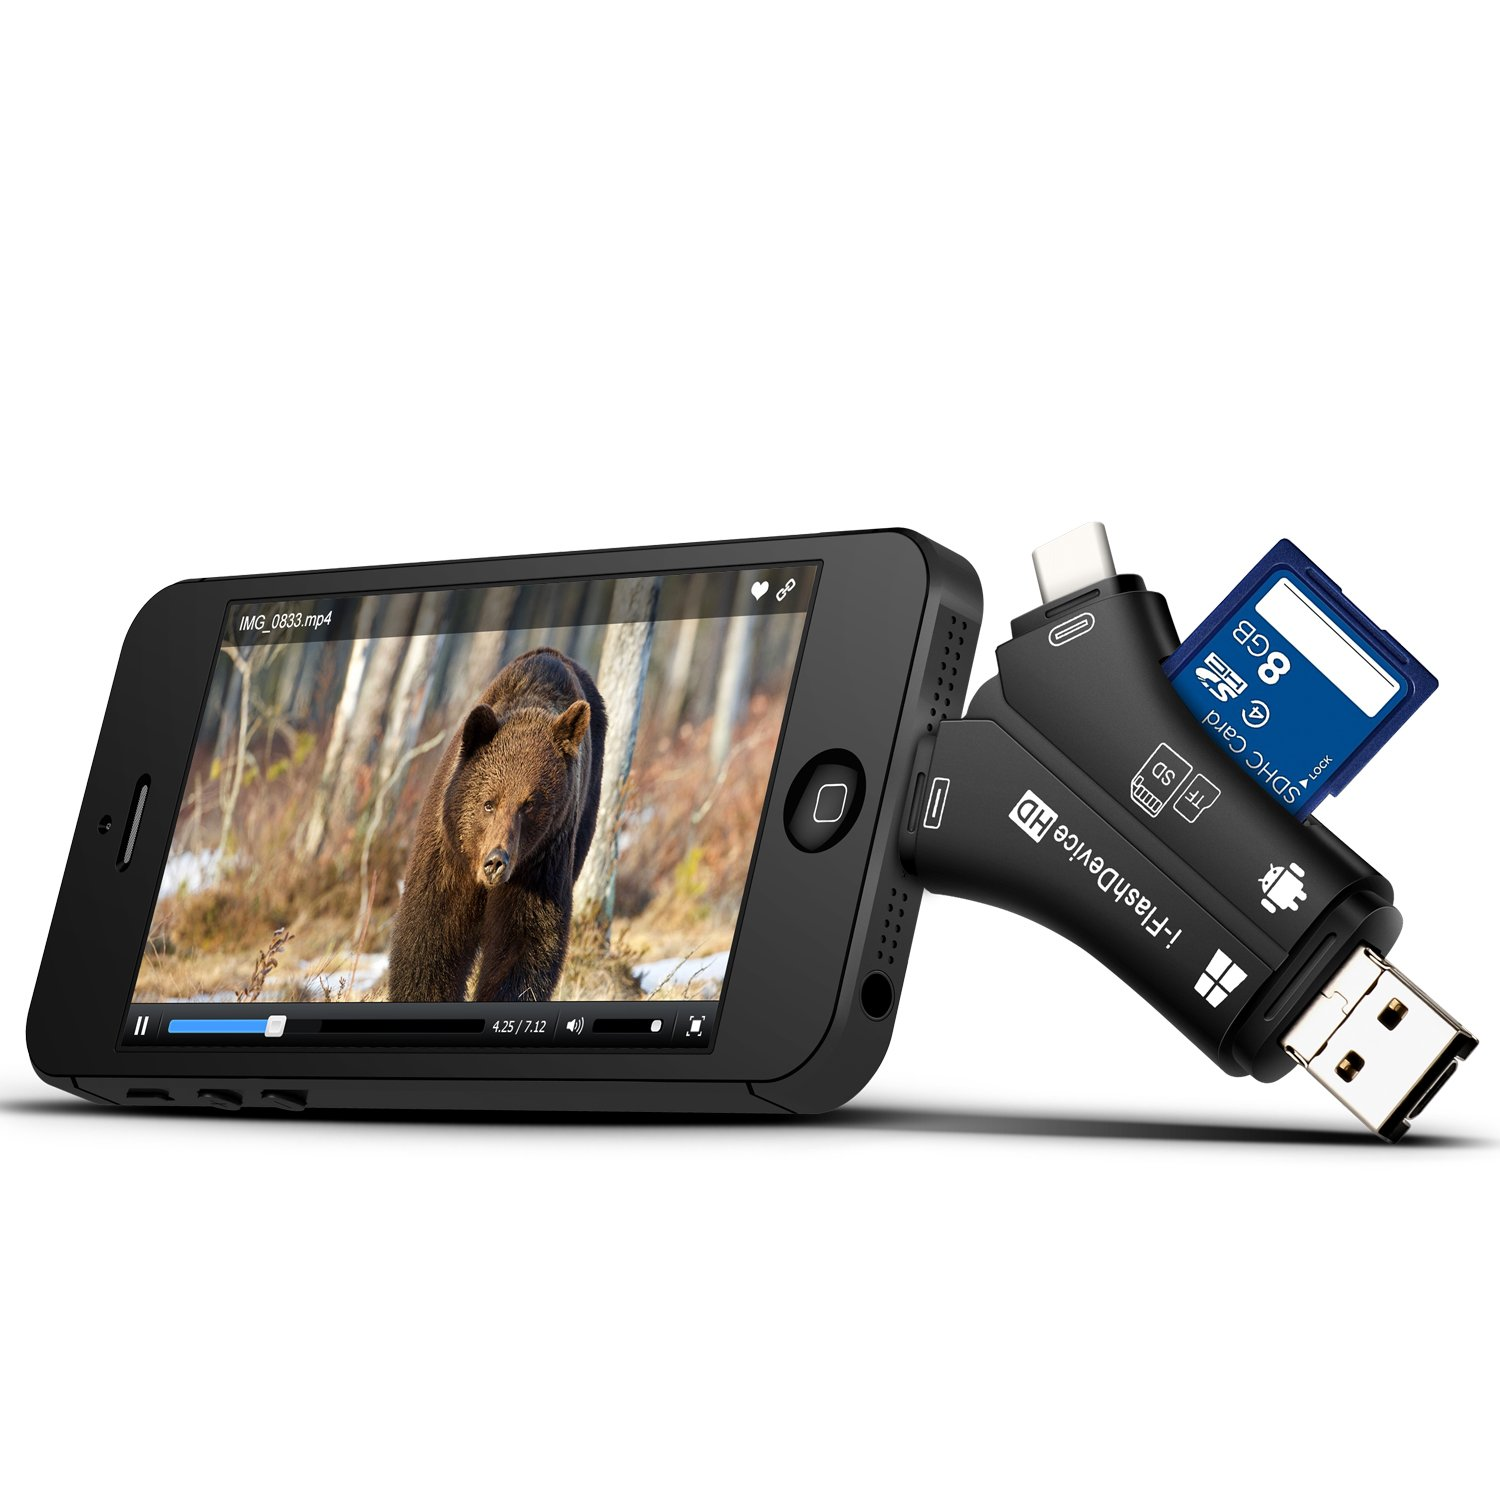 MOSPRO trail iPhone apple Mac & Android camera viewer, SD and micro SD memory card reader to view the photos and video from any wild animal surveillance CAM game deer hunter black smart phones